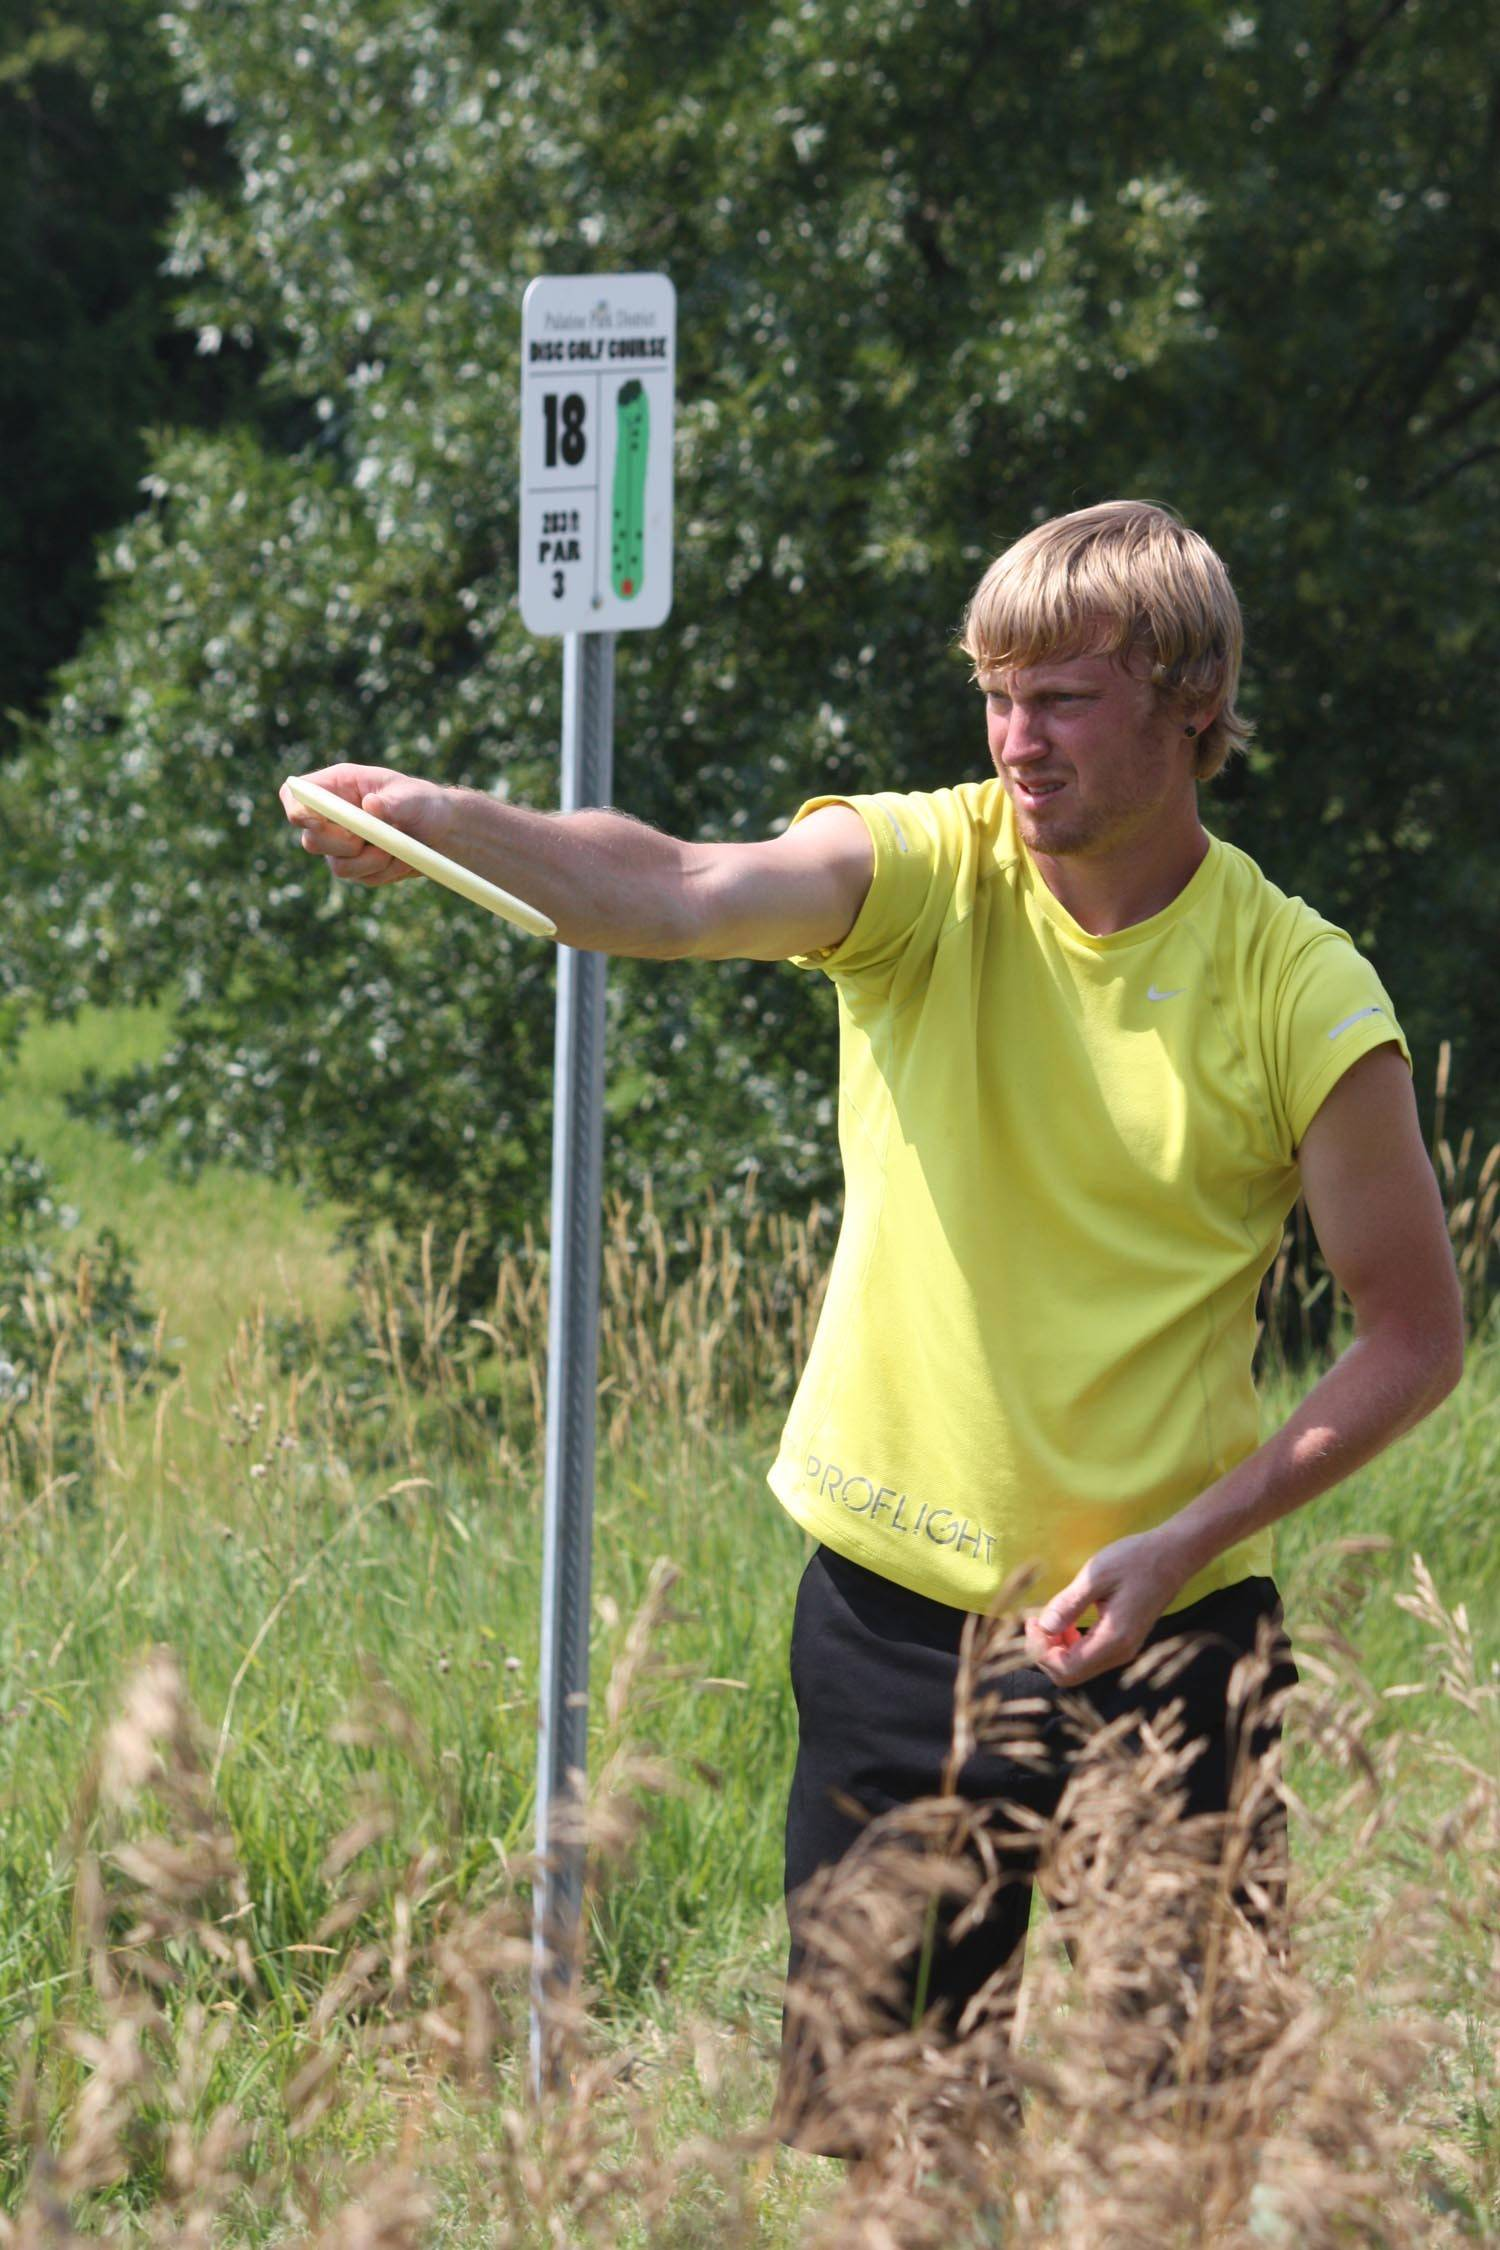 Palatine Park District hosts the Margreth Riemer Open Disc Golf Tournament presented by Walgreens on Saturday, June 14. For information, www.palatineparks.org.